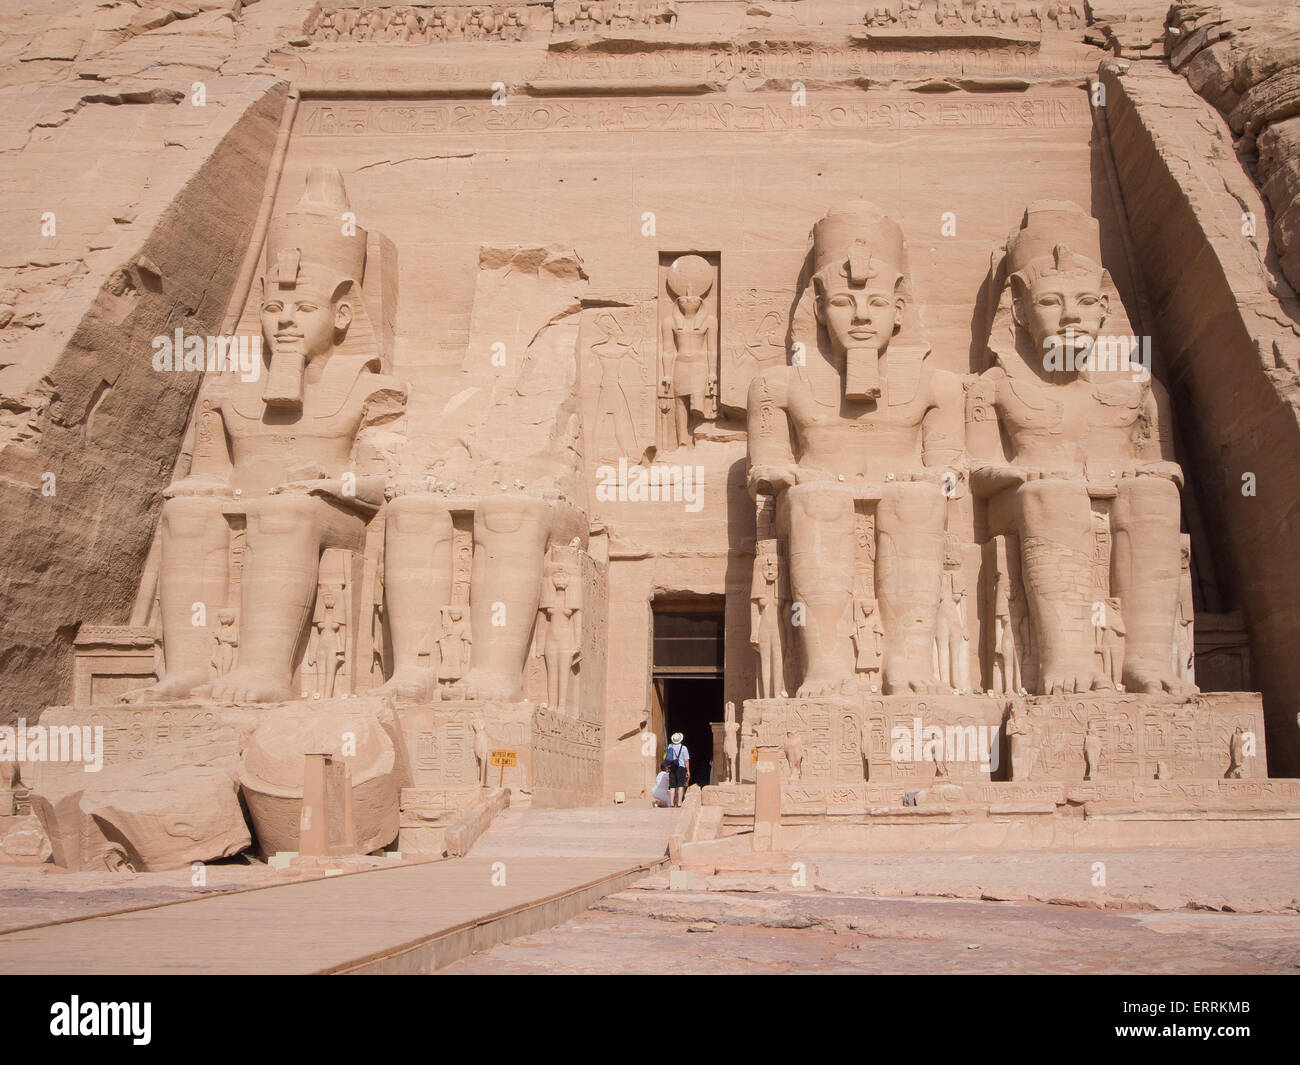 temple-of-ramesses-beloved-by-amun-at-abu-simbel-nubia-egypt-ERRKMB.jpg